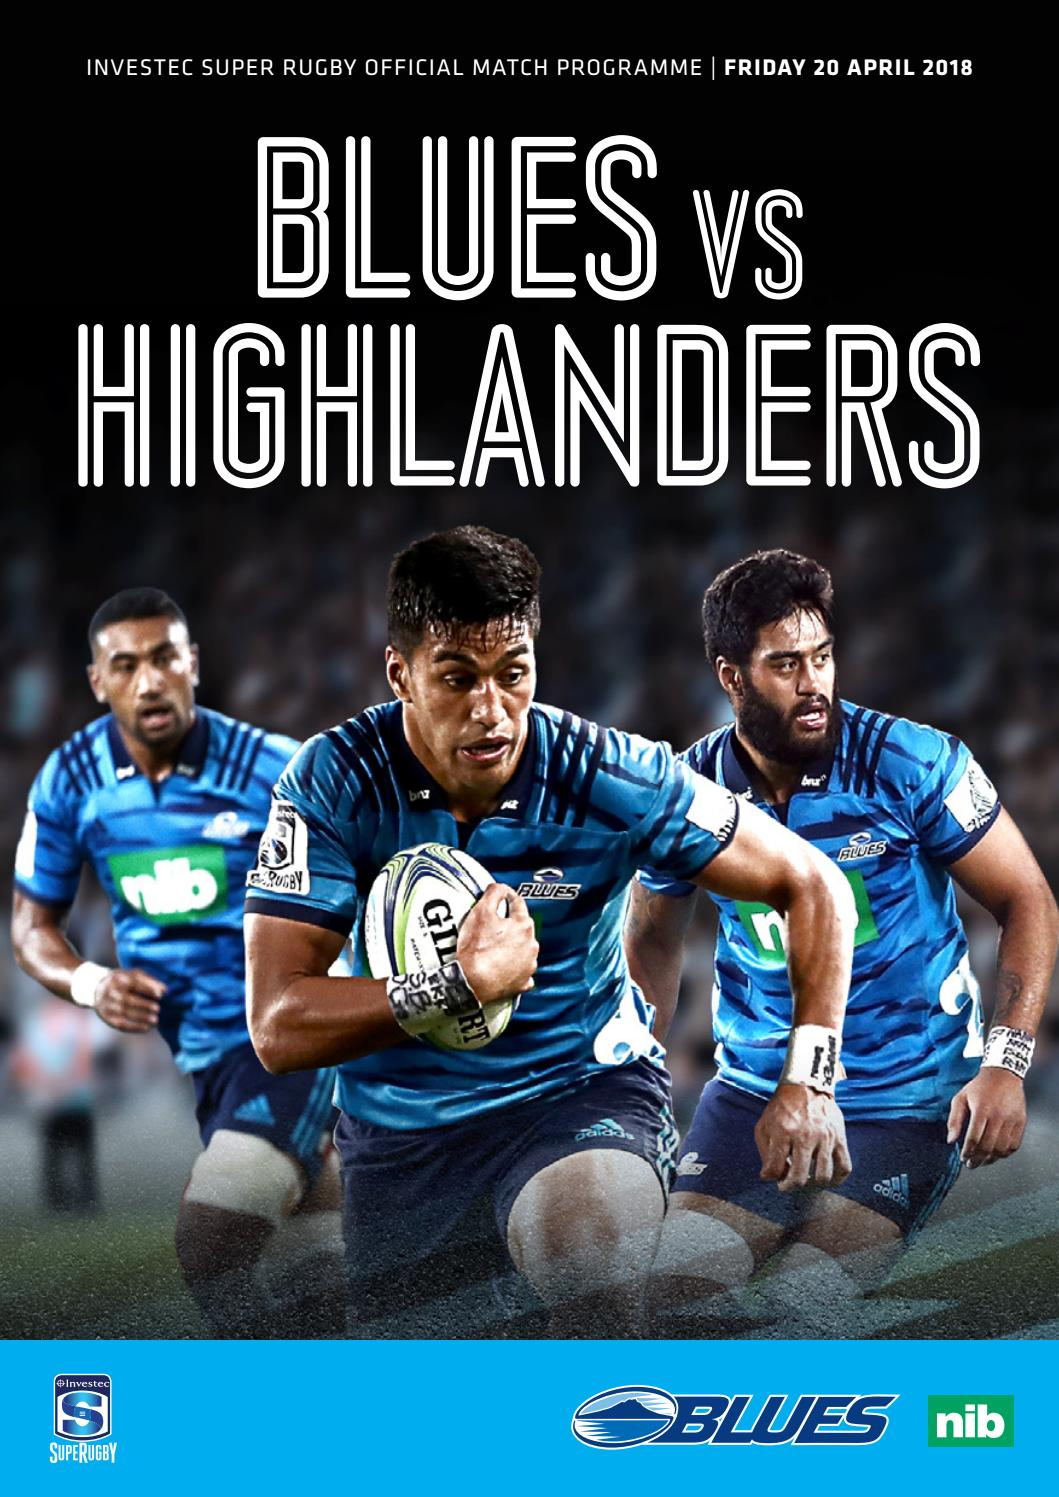 Blues v Highlanders - 20 April 2018 by The Blues Rugby Club - issuu